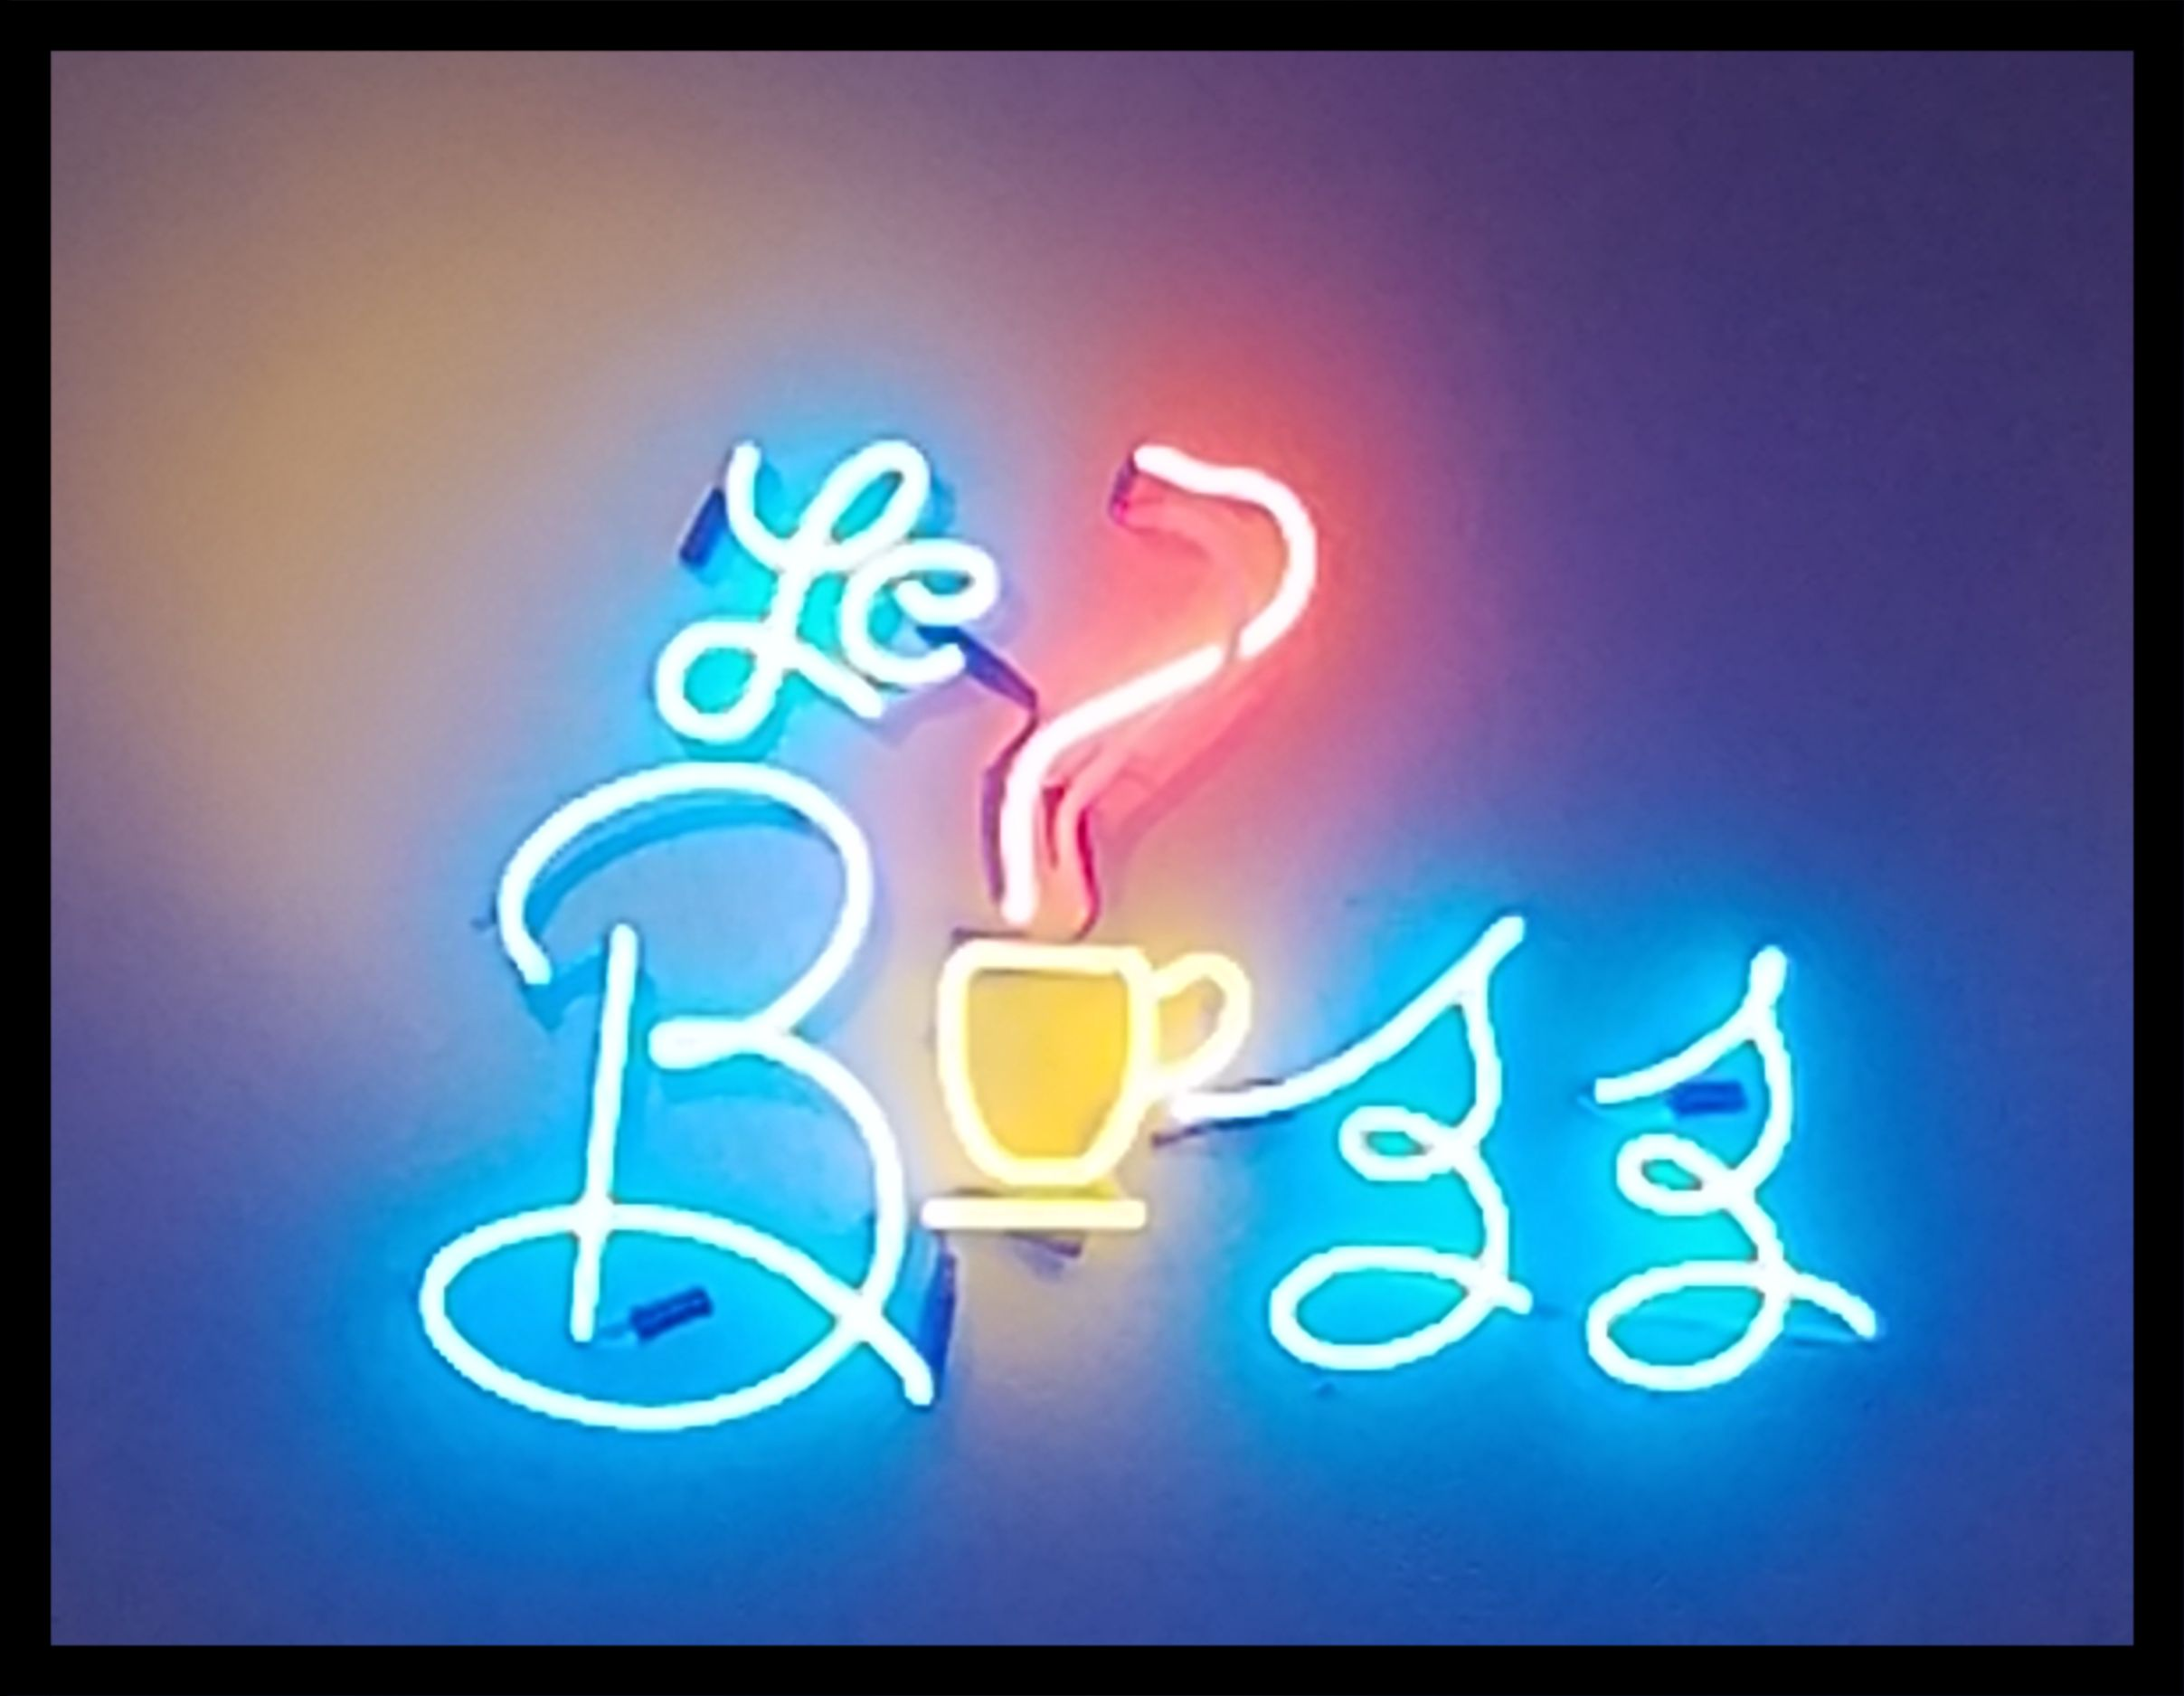 Illuminated/Neon Signs